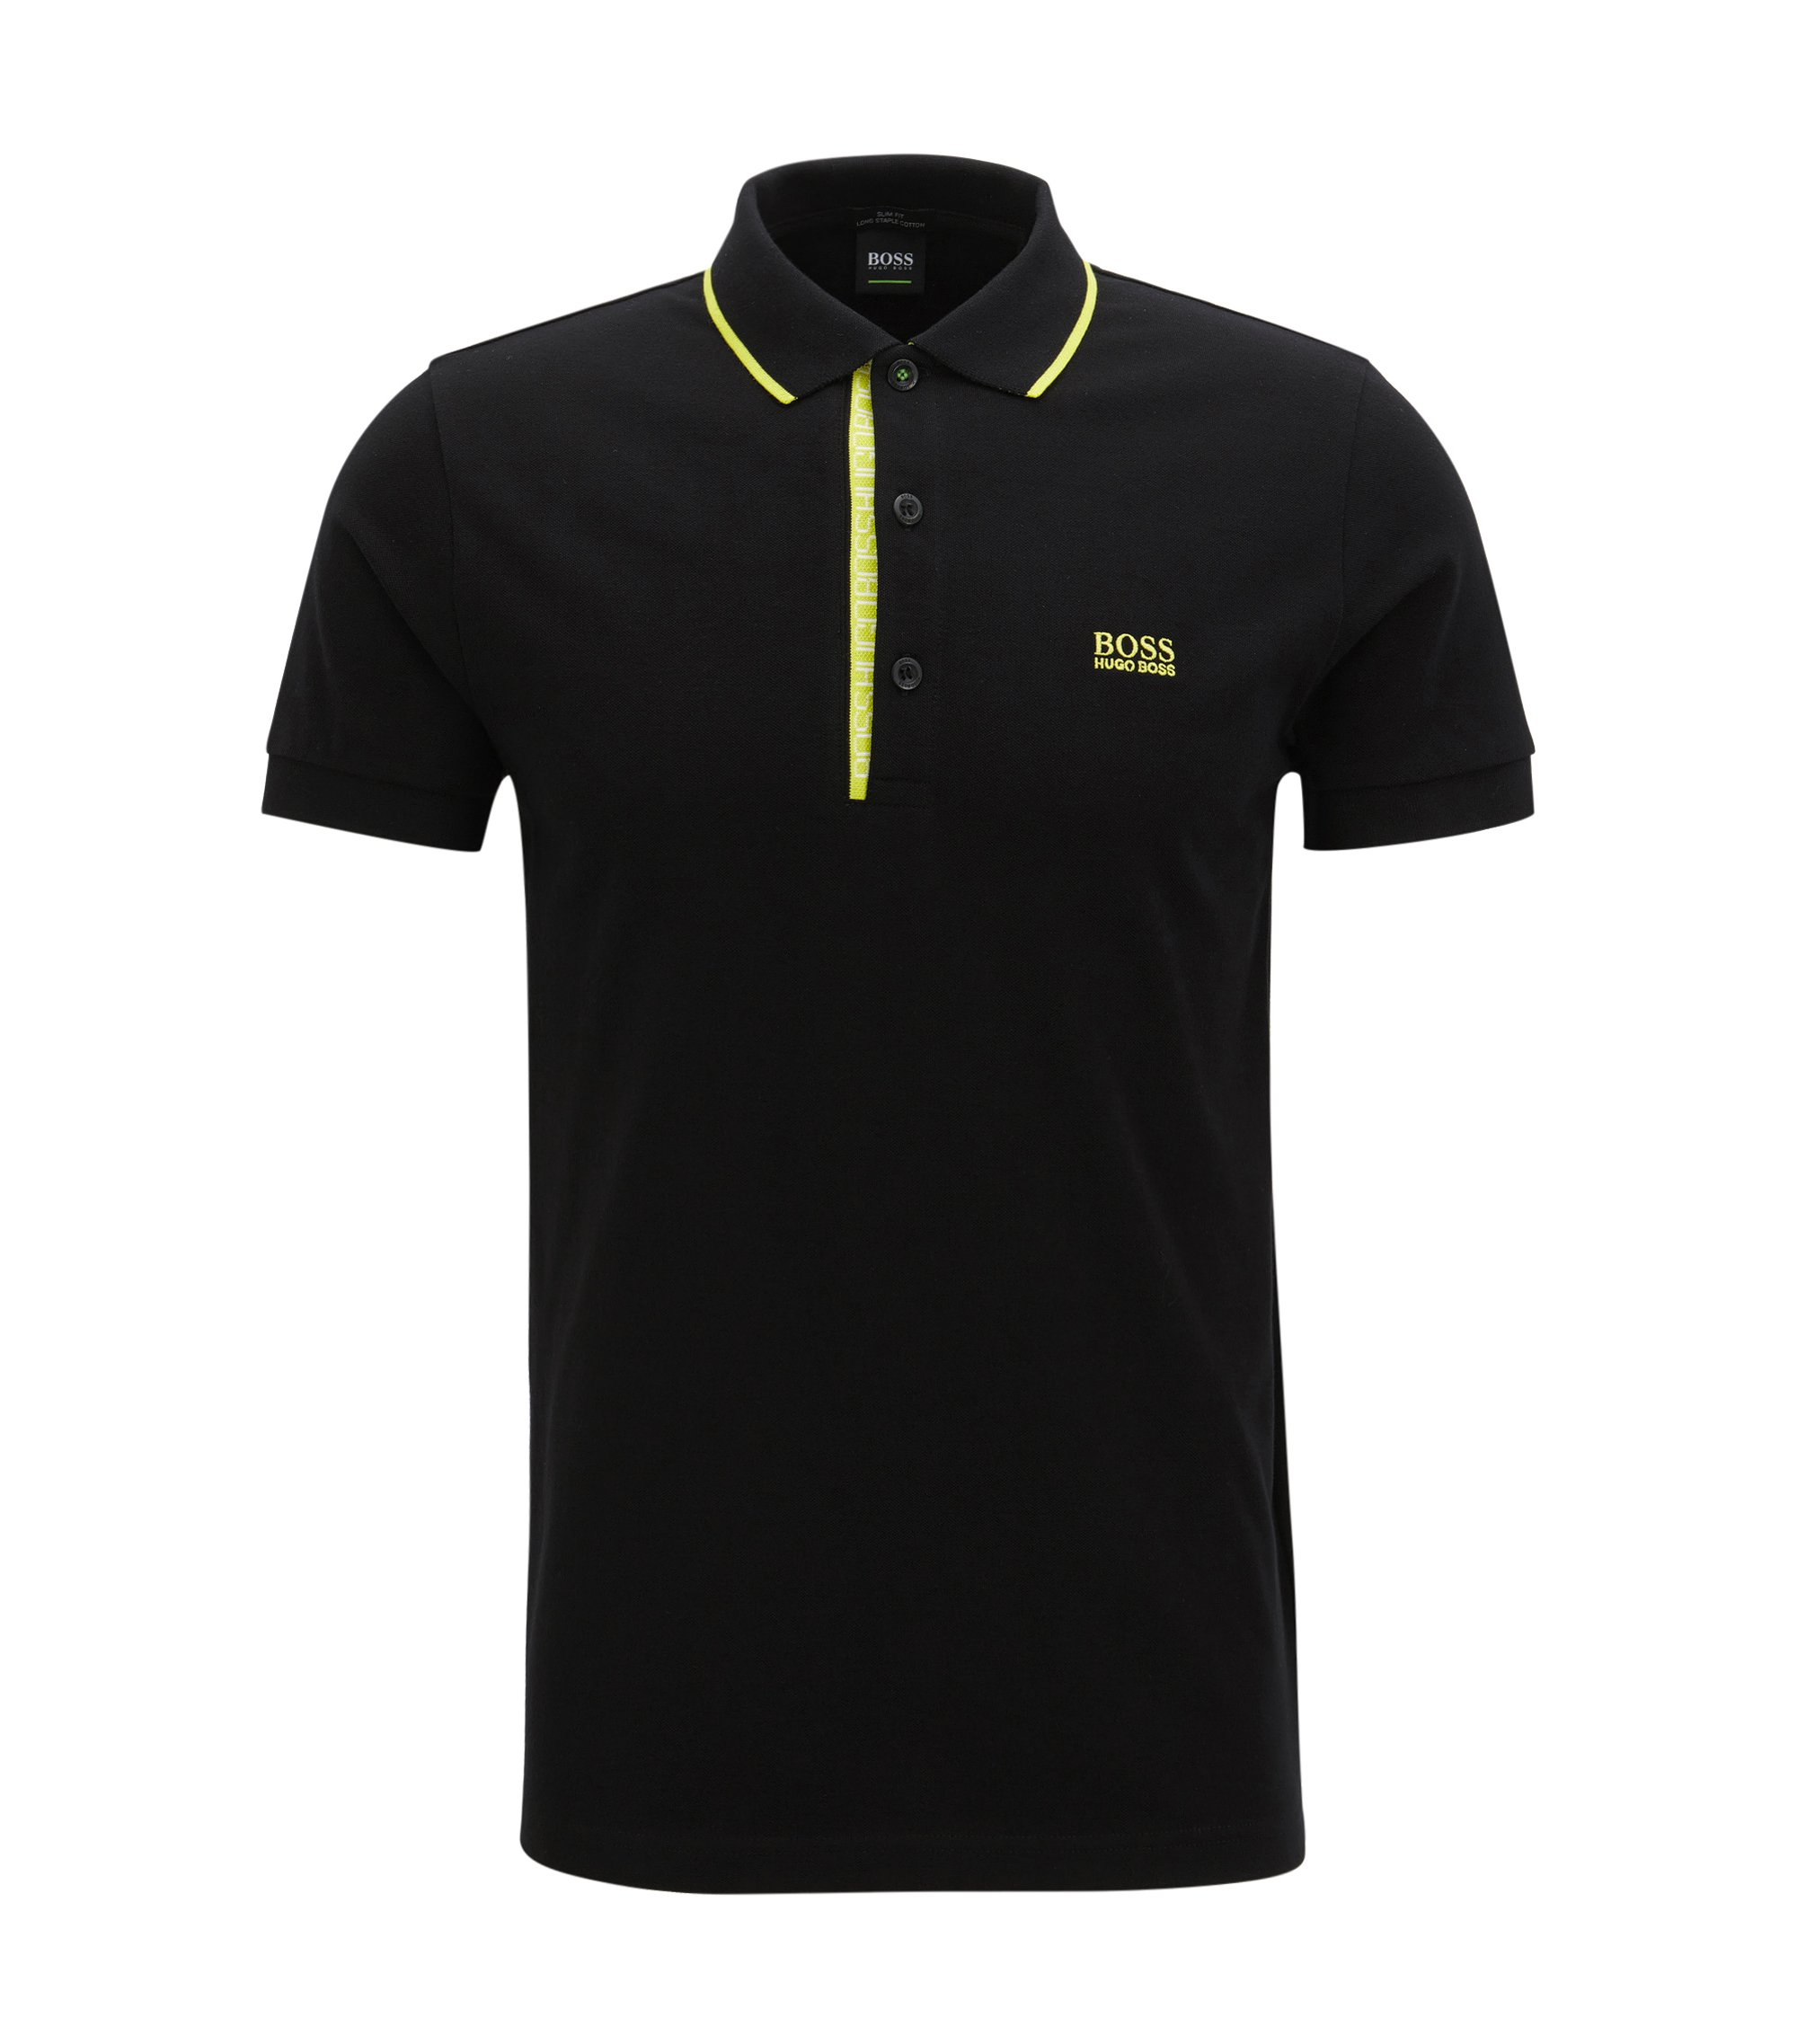 Oxfotd Cotton Polo Shirt, Slim Fit | Paule, Black